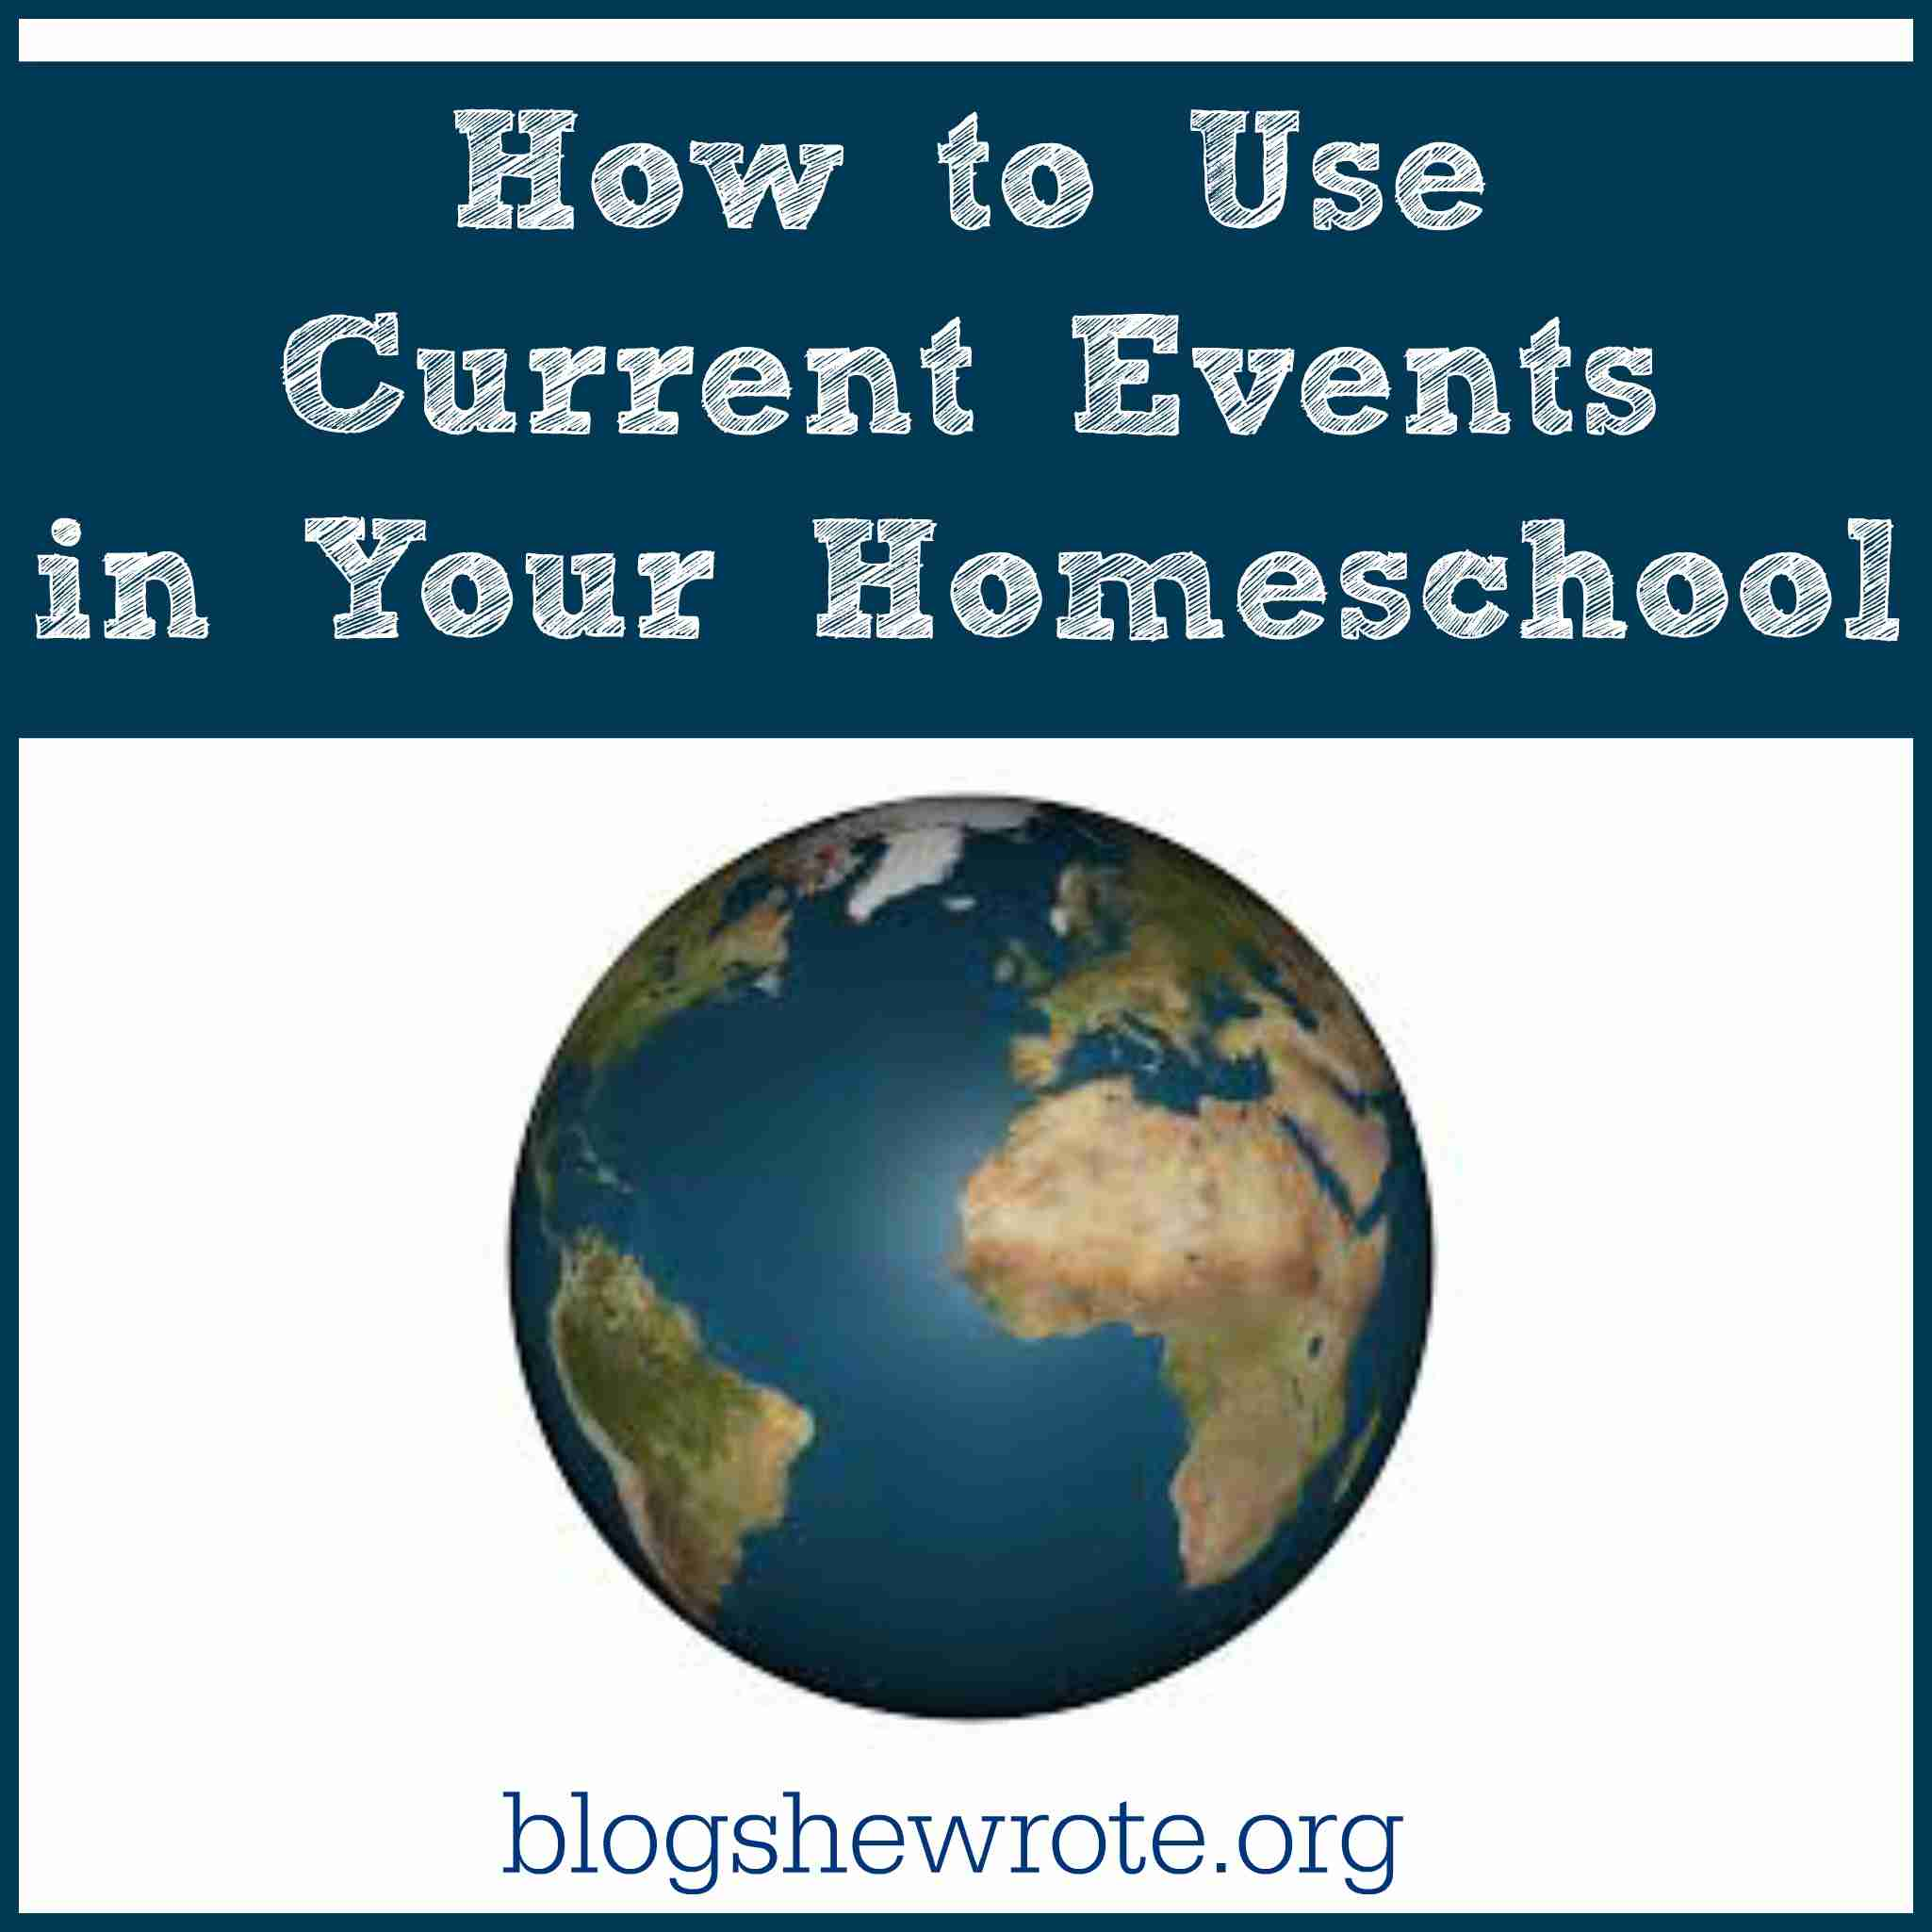 Blog, She Wrote: How to Use Current Events in Your Homeschool